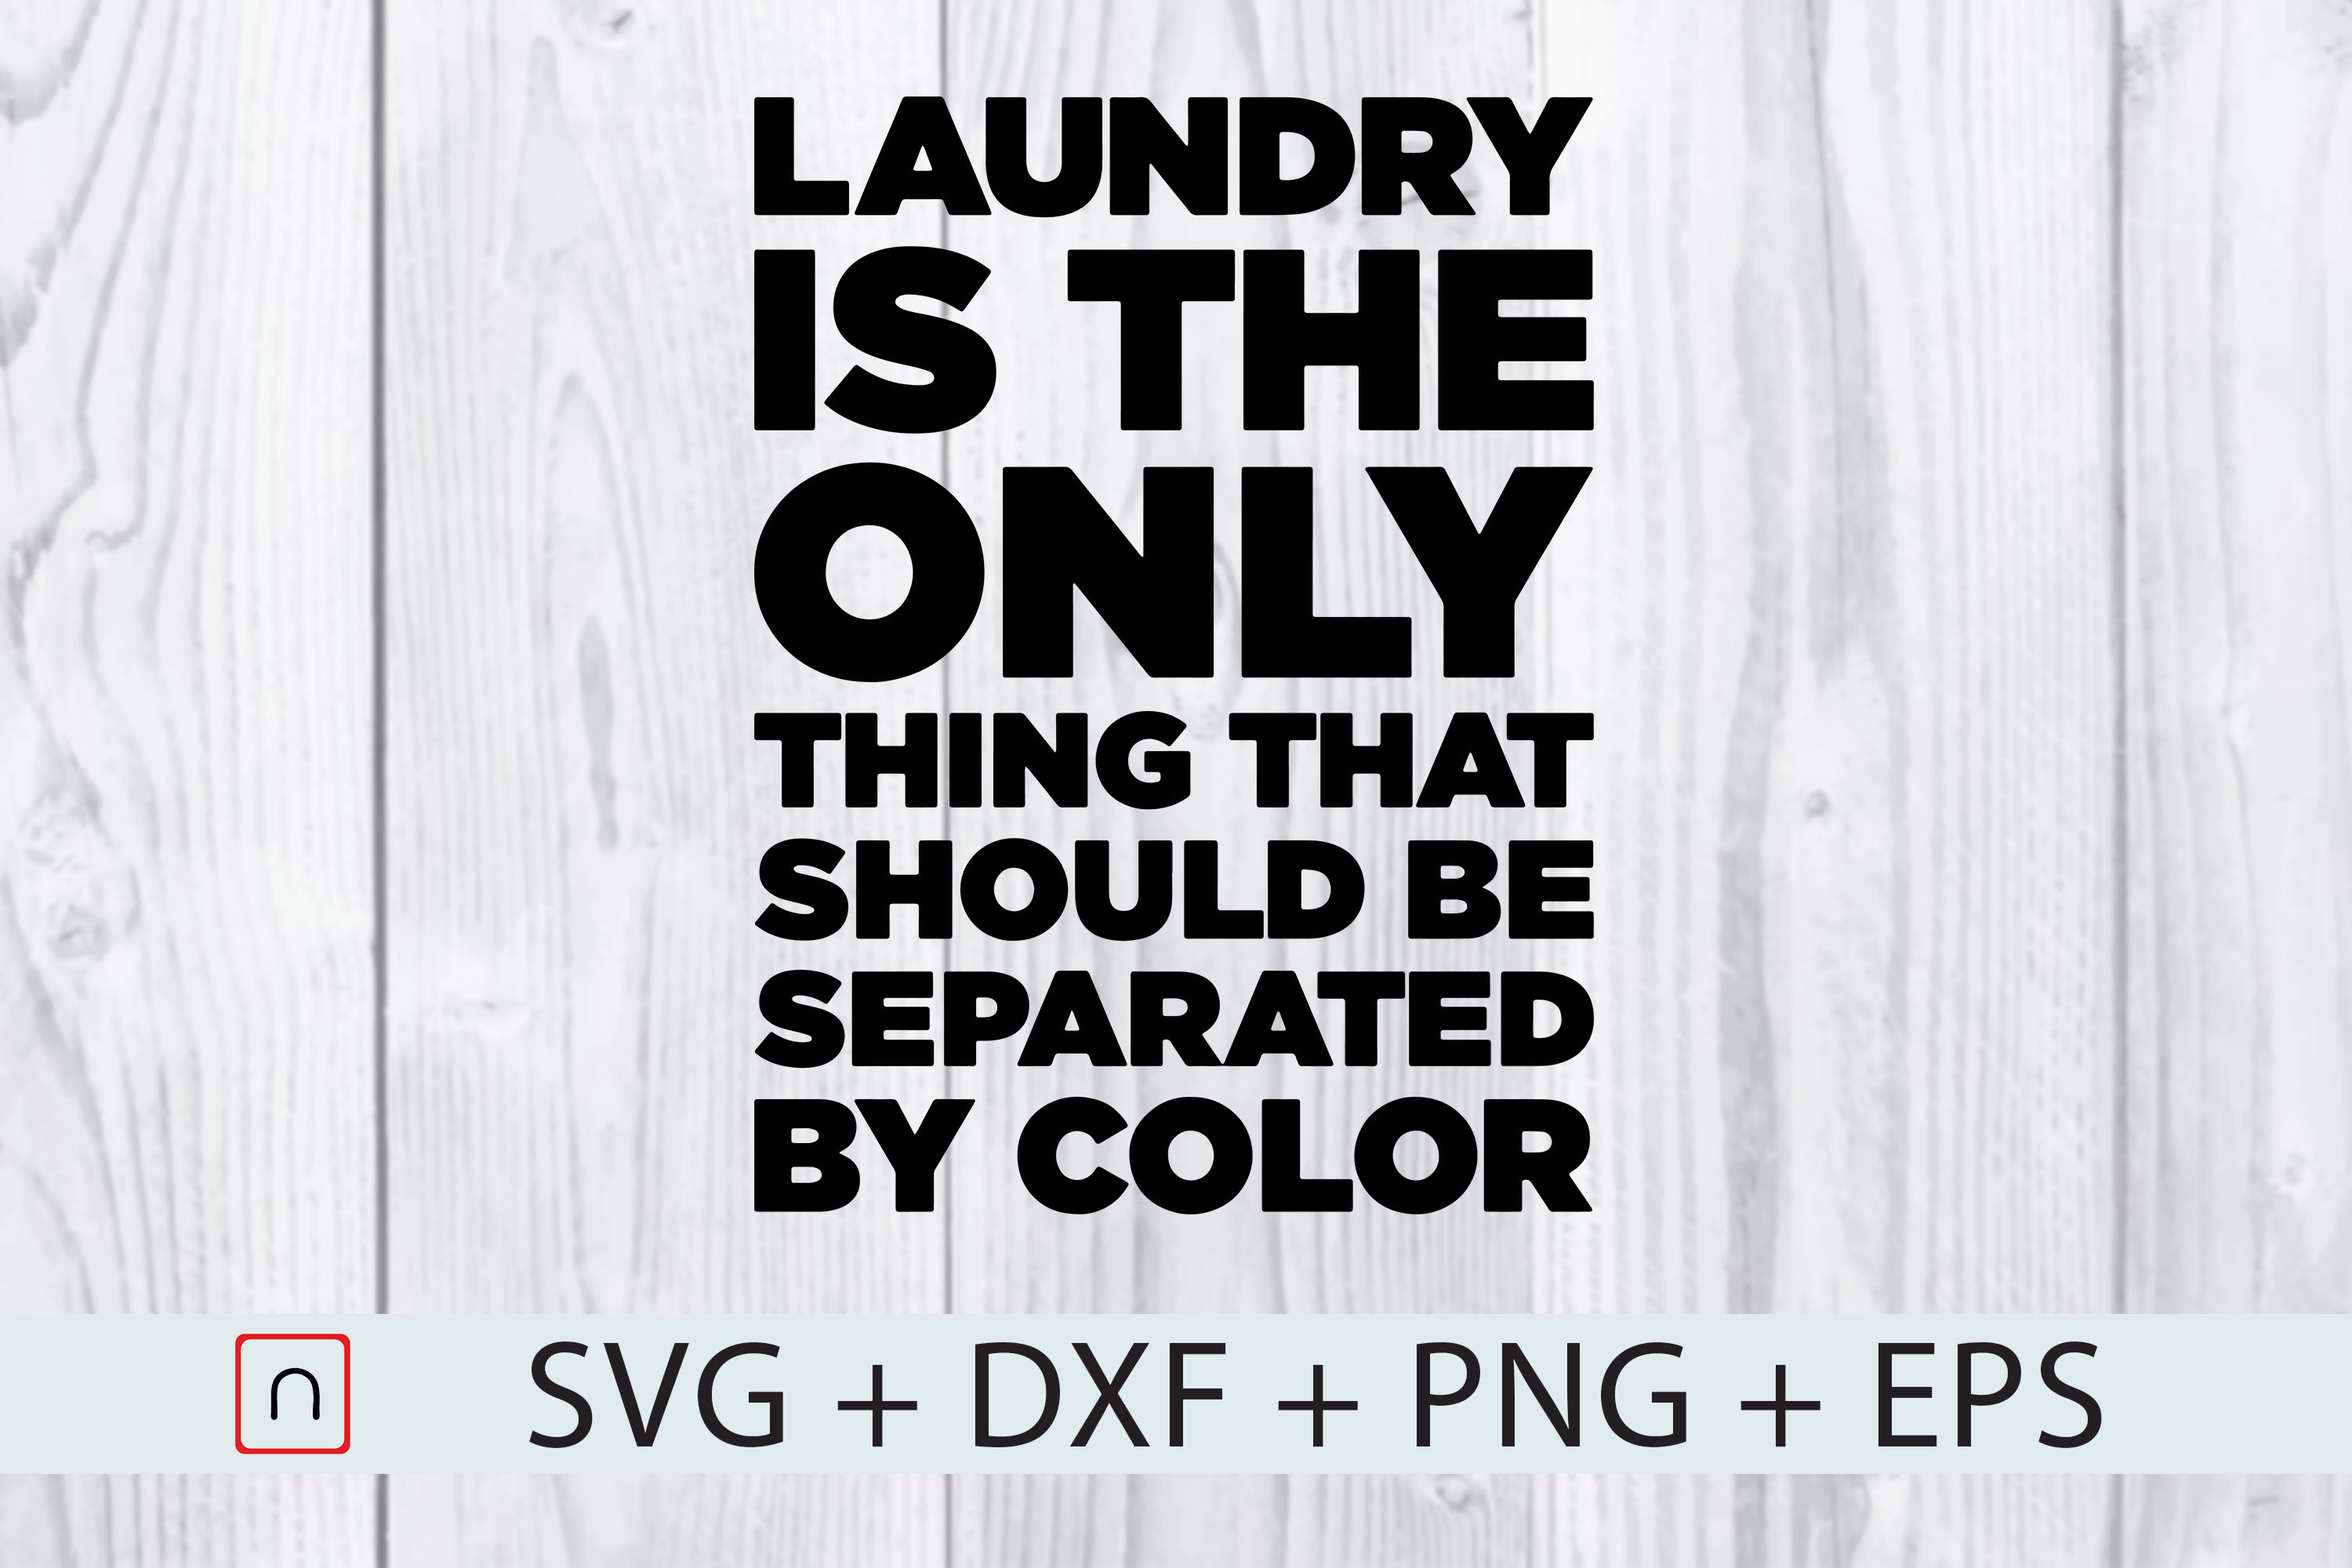 Download Free Laundry Only Thing Separated By Color Graphic By Novalia for Cricut Explore, Silhouette and other cutting machines.